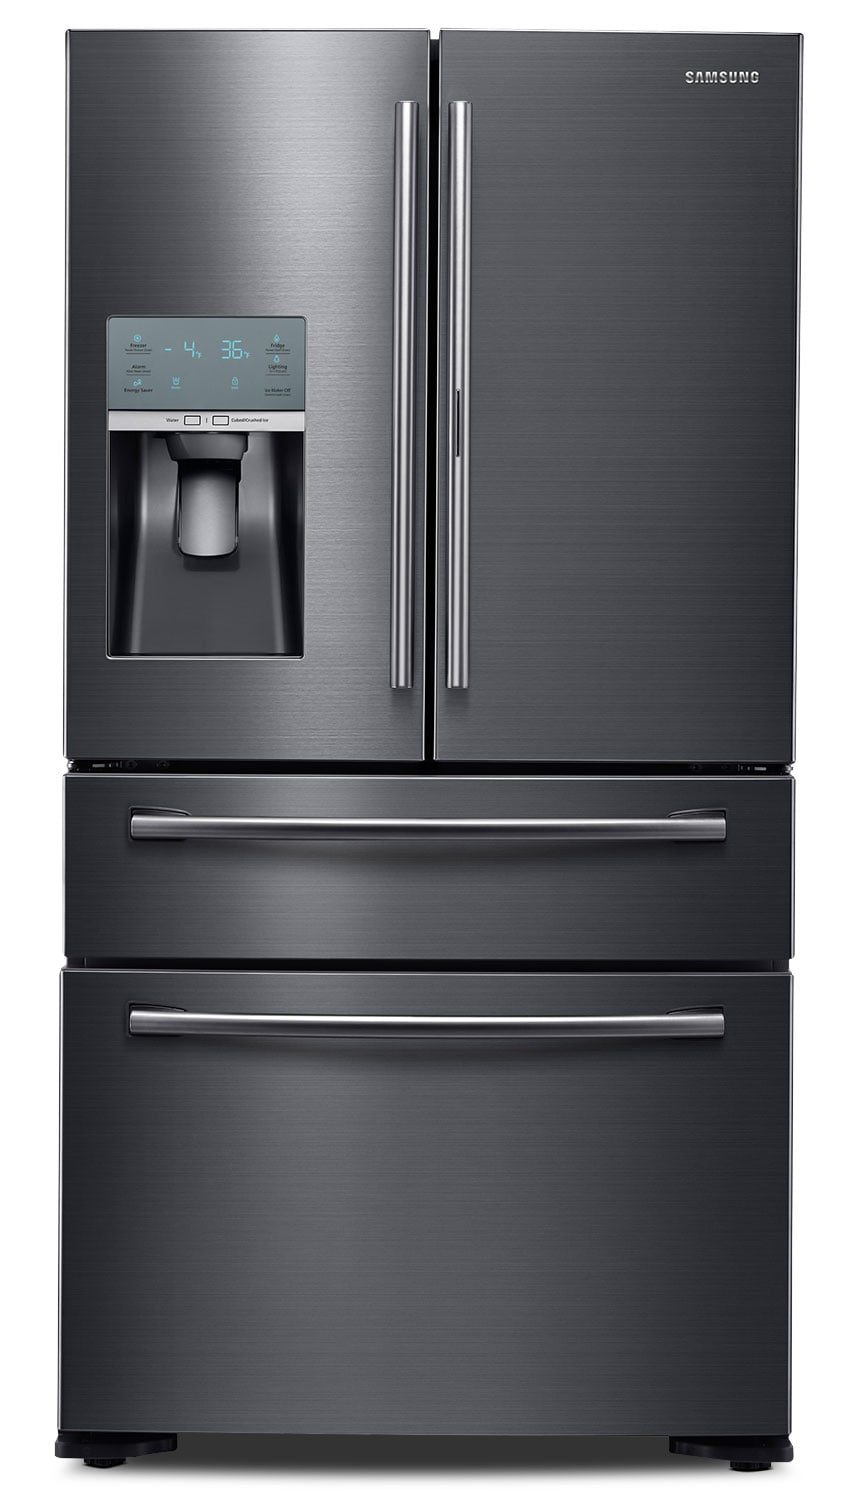 Refrigerators and Freezers - Samsung Black Stainless Steel Counter-Depth French Door Refrigerator (22 Cu. Ft.) - RF22KREDBSG/AA